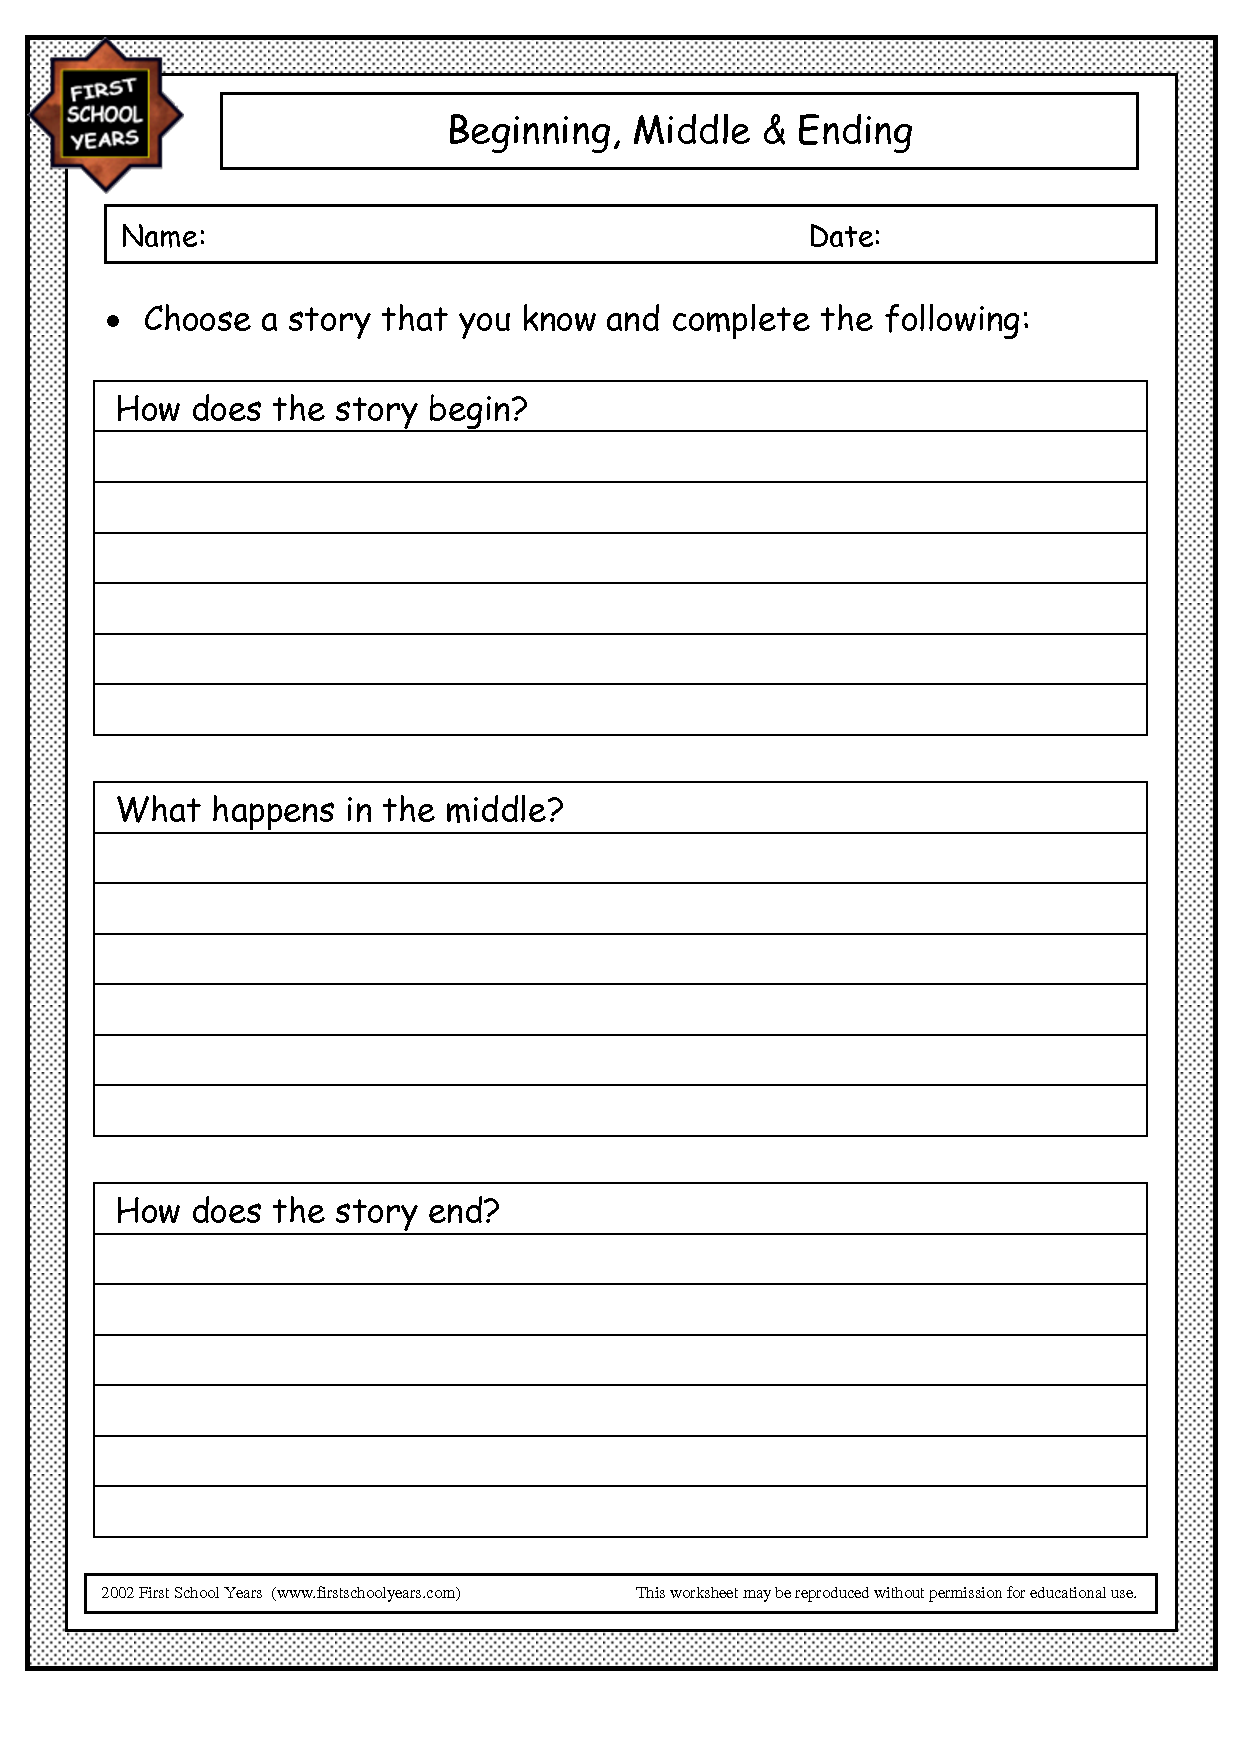 Beginning Middle End Worksheet Kindergarten Images With